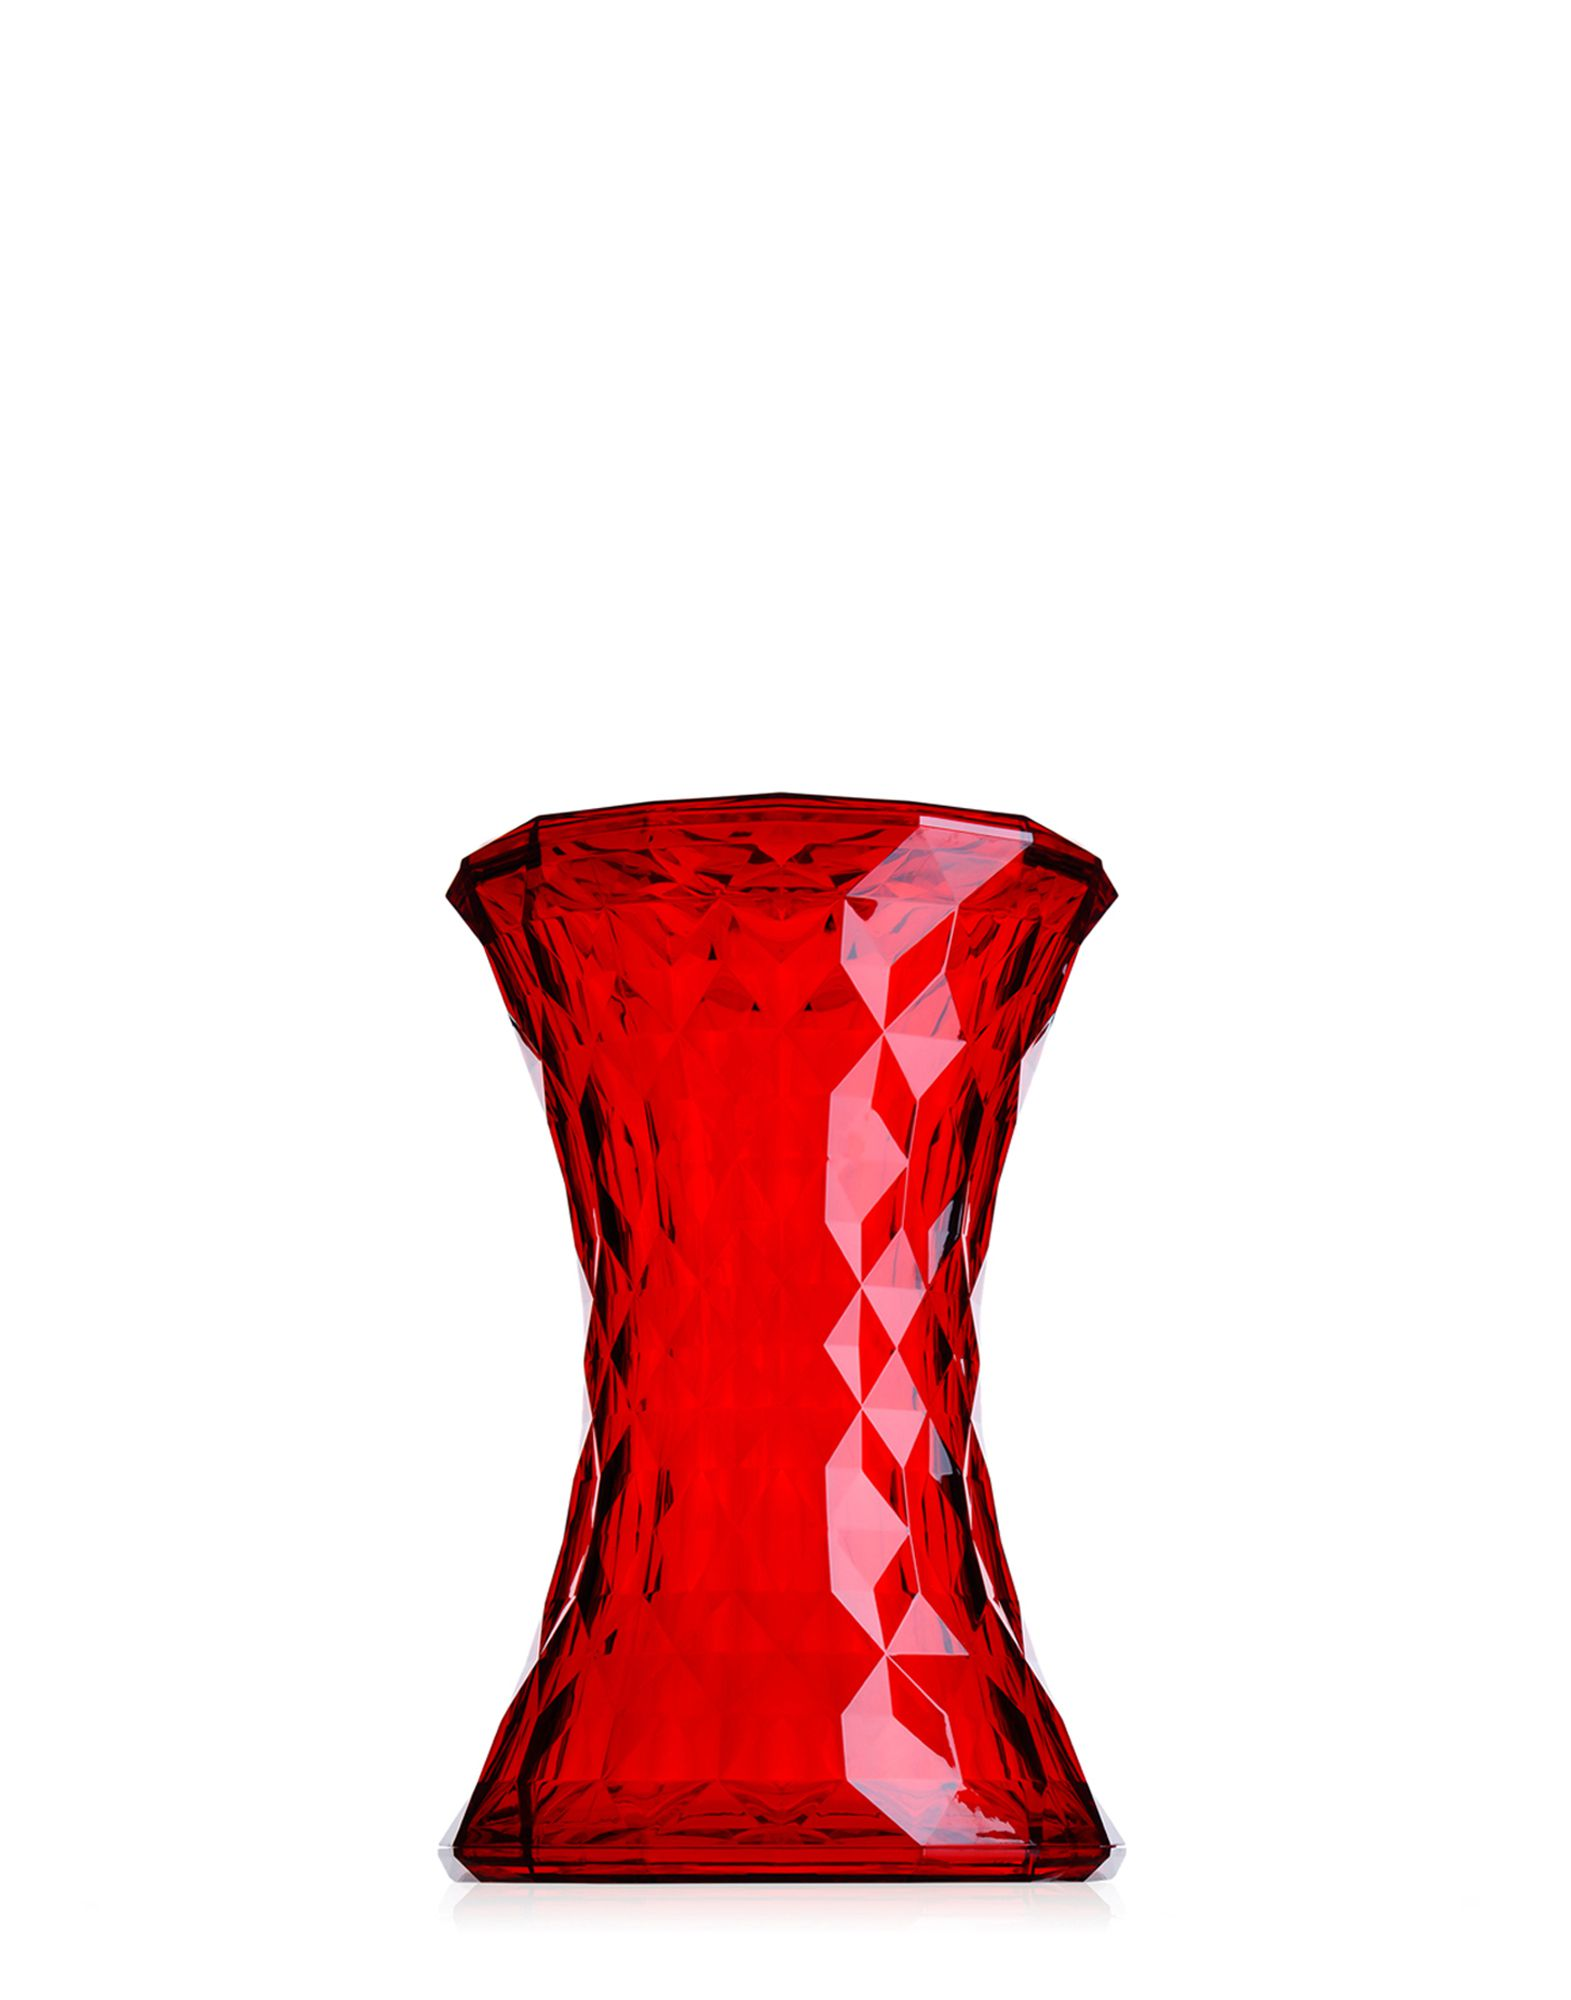 Stool Kartell Stone Red Newformsdesign Coffee Tables